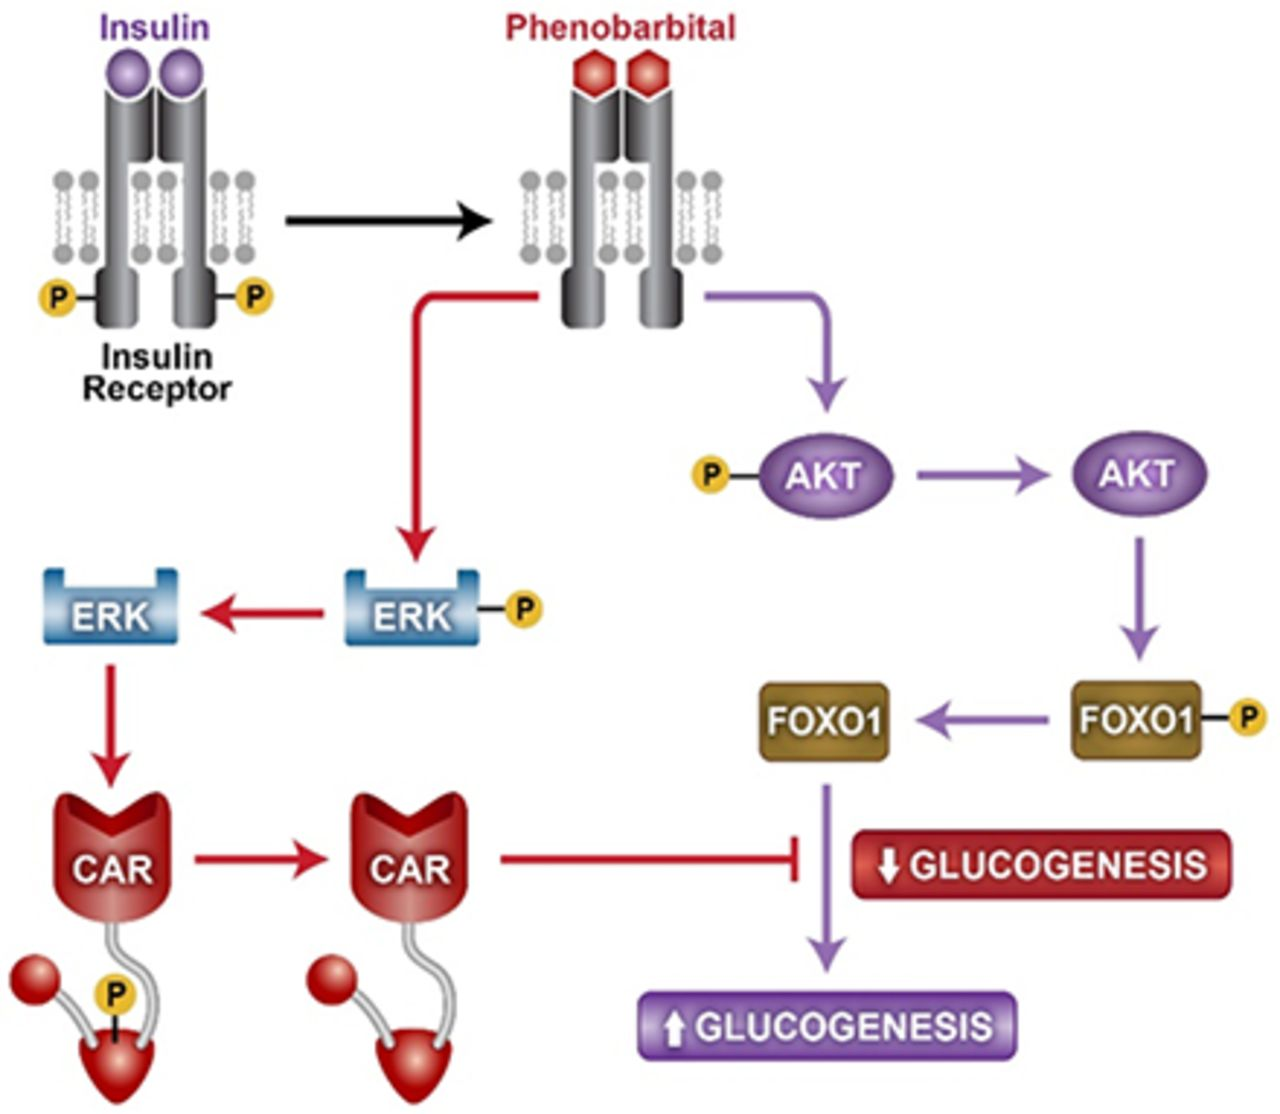 Phenobarbital and insulin reciprocate activation of the nuclear download figure pooptronica Choice Image